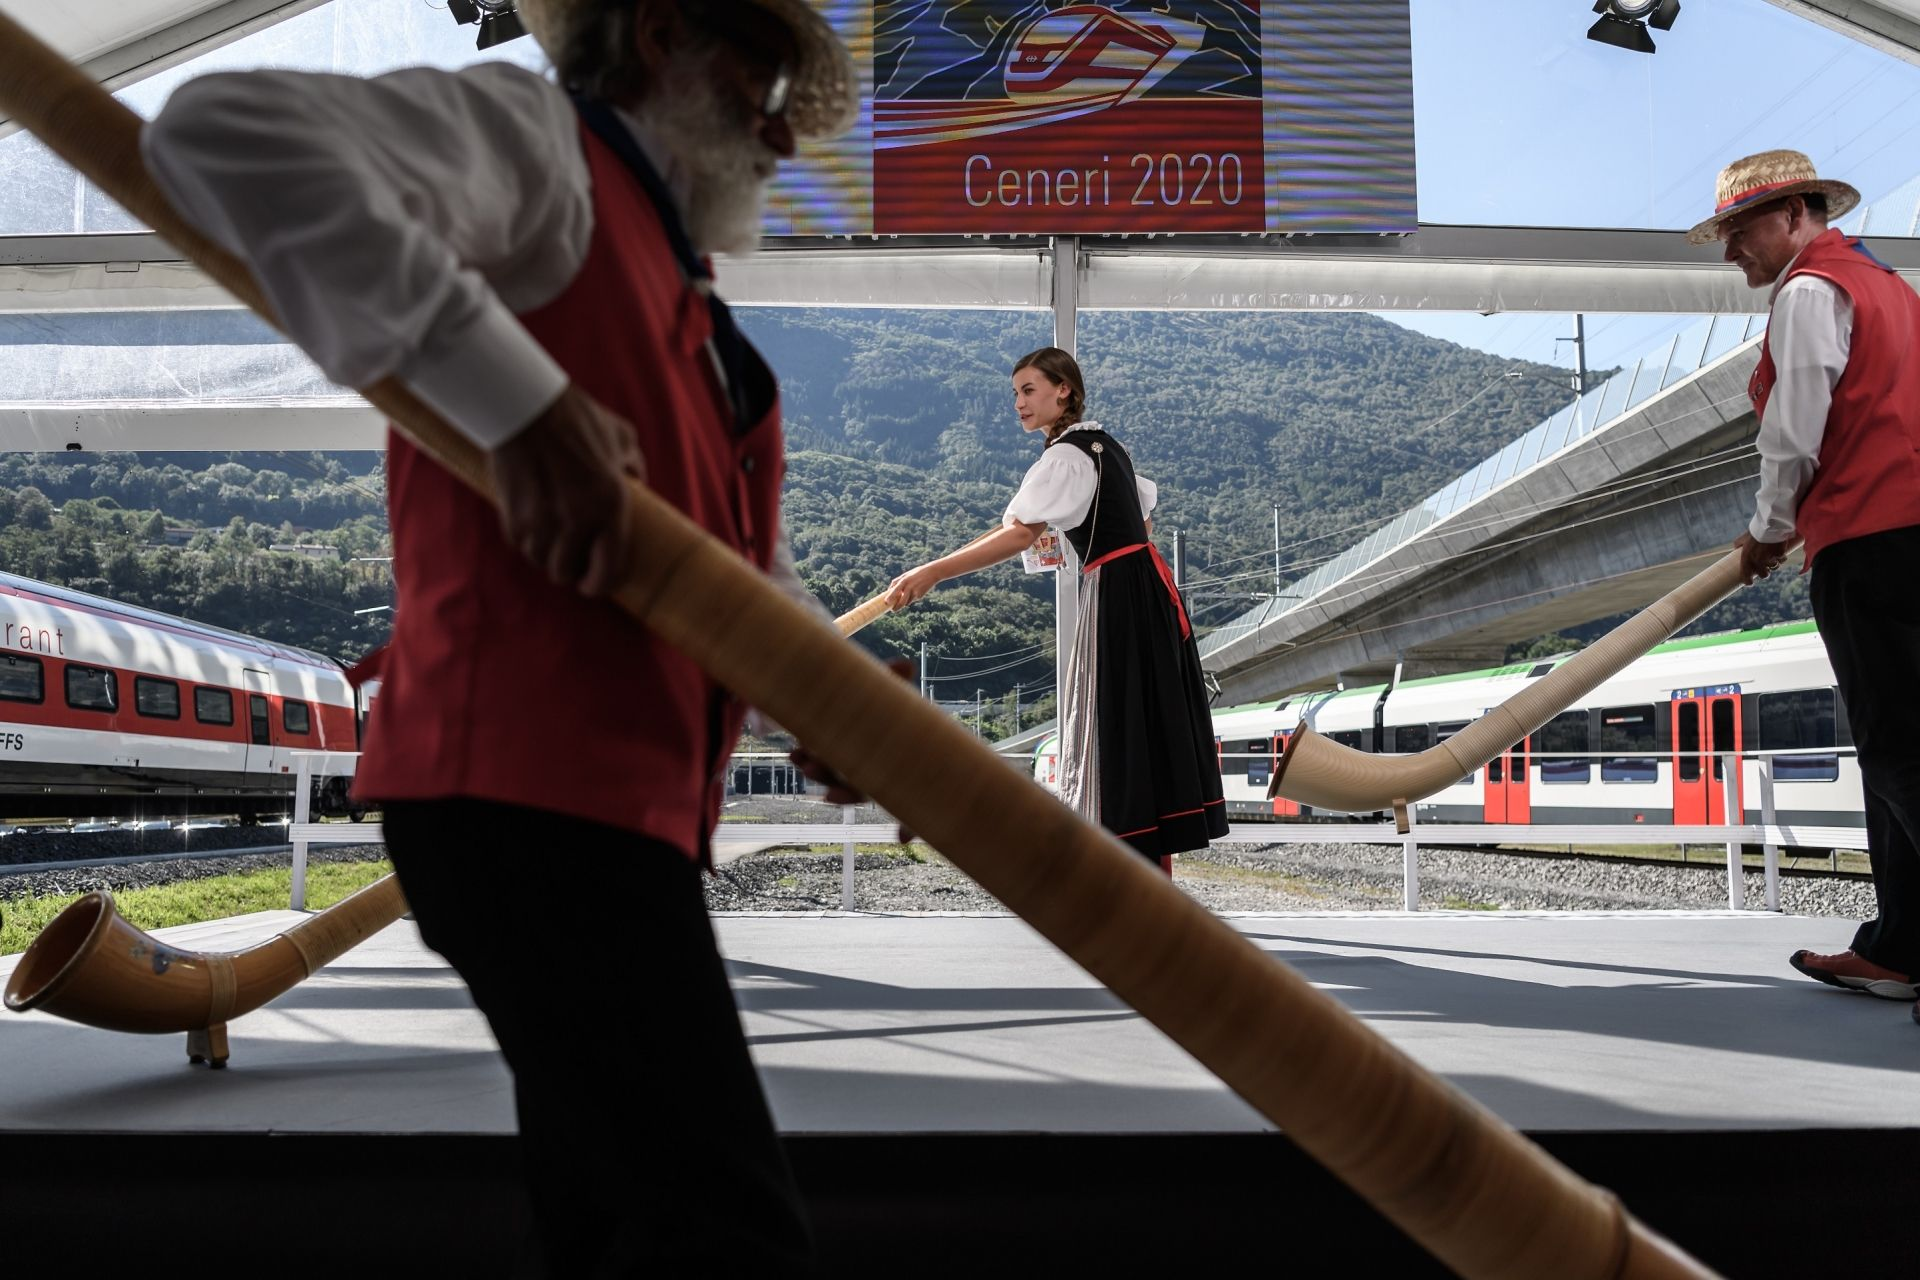 Alphorn blowers arrive on stage on September 4, 2020, in Camorino, southern Switzerland during the inauguration of the Ceneri Base railway tunnel, a two single-track 15,4 km long tunnel final part of the New Railway Link through the Alps (NRLA) construction project by Swiss autorities for faster rail links across the Alps aiming to mainly reduce transalpine truck traffic. - The rail service is expected to start in December 2020. (Photo by Fabrice COFFRINI / AFP)